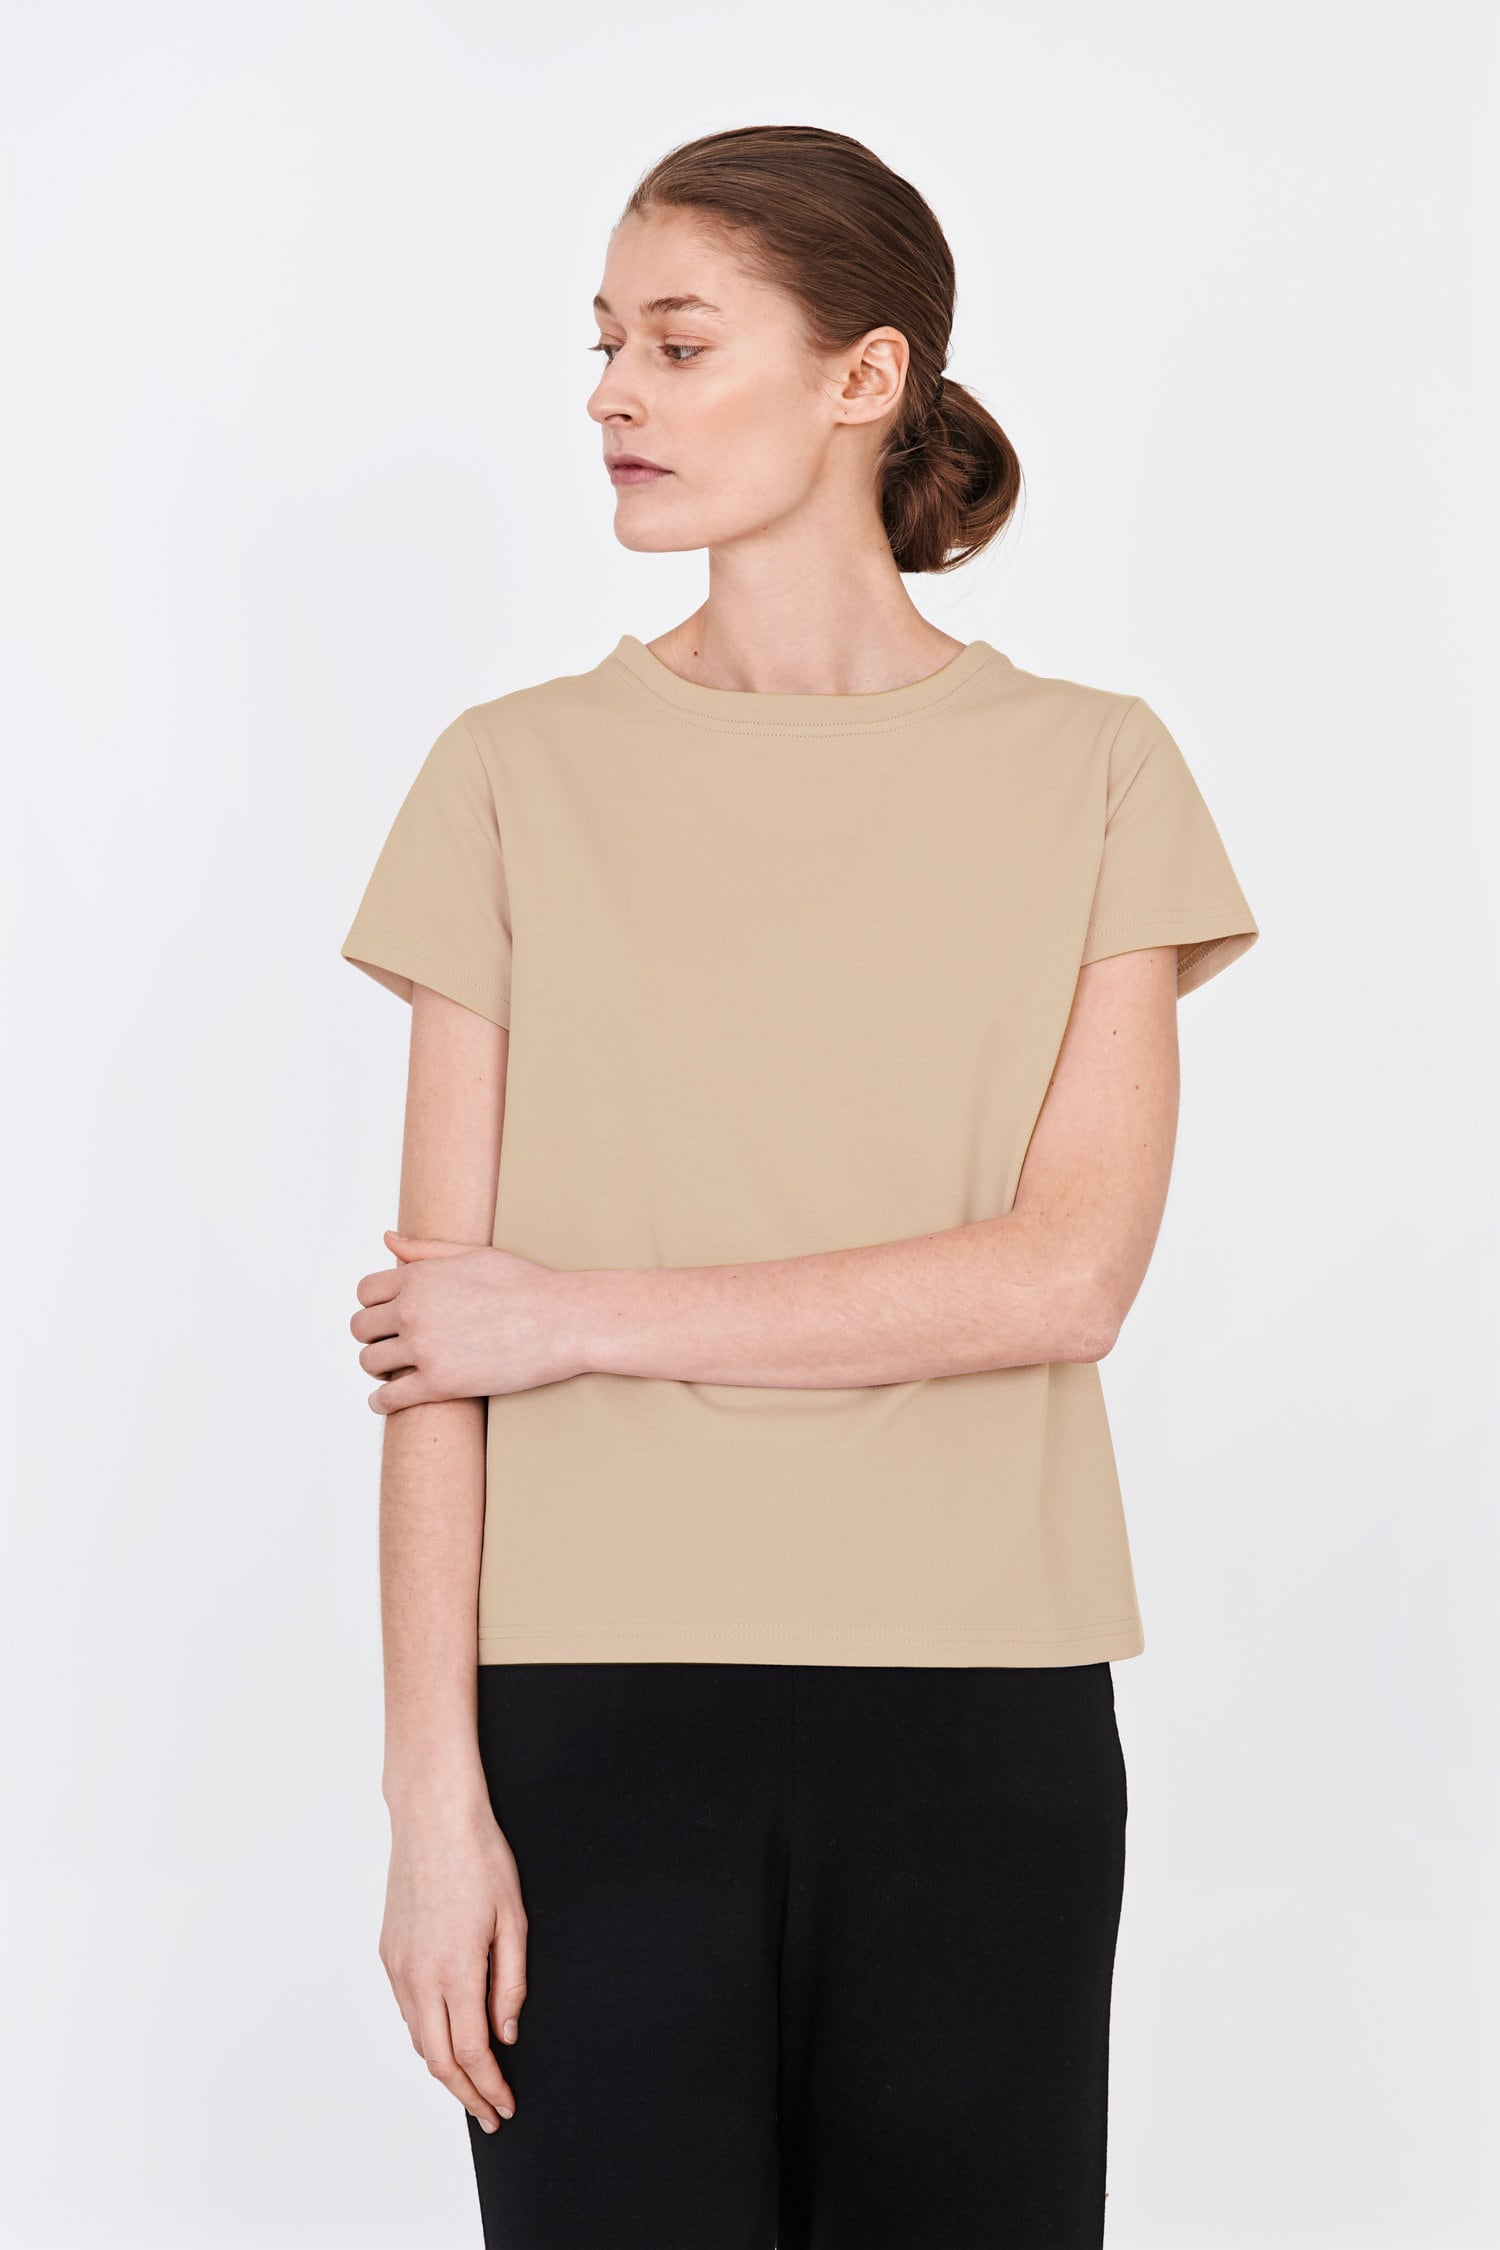 Kim t-shirt in beige